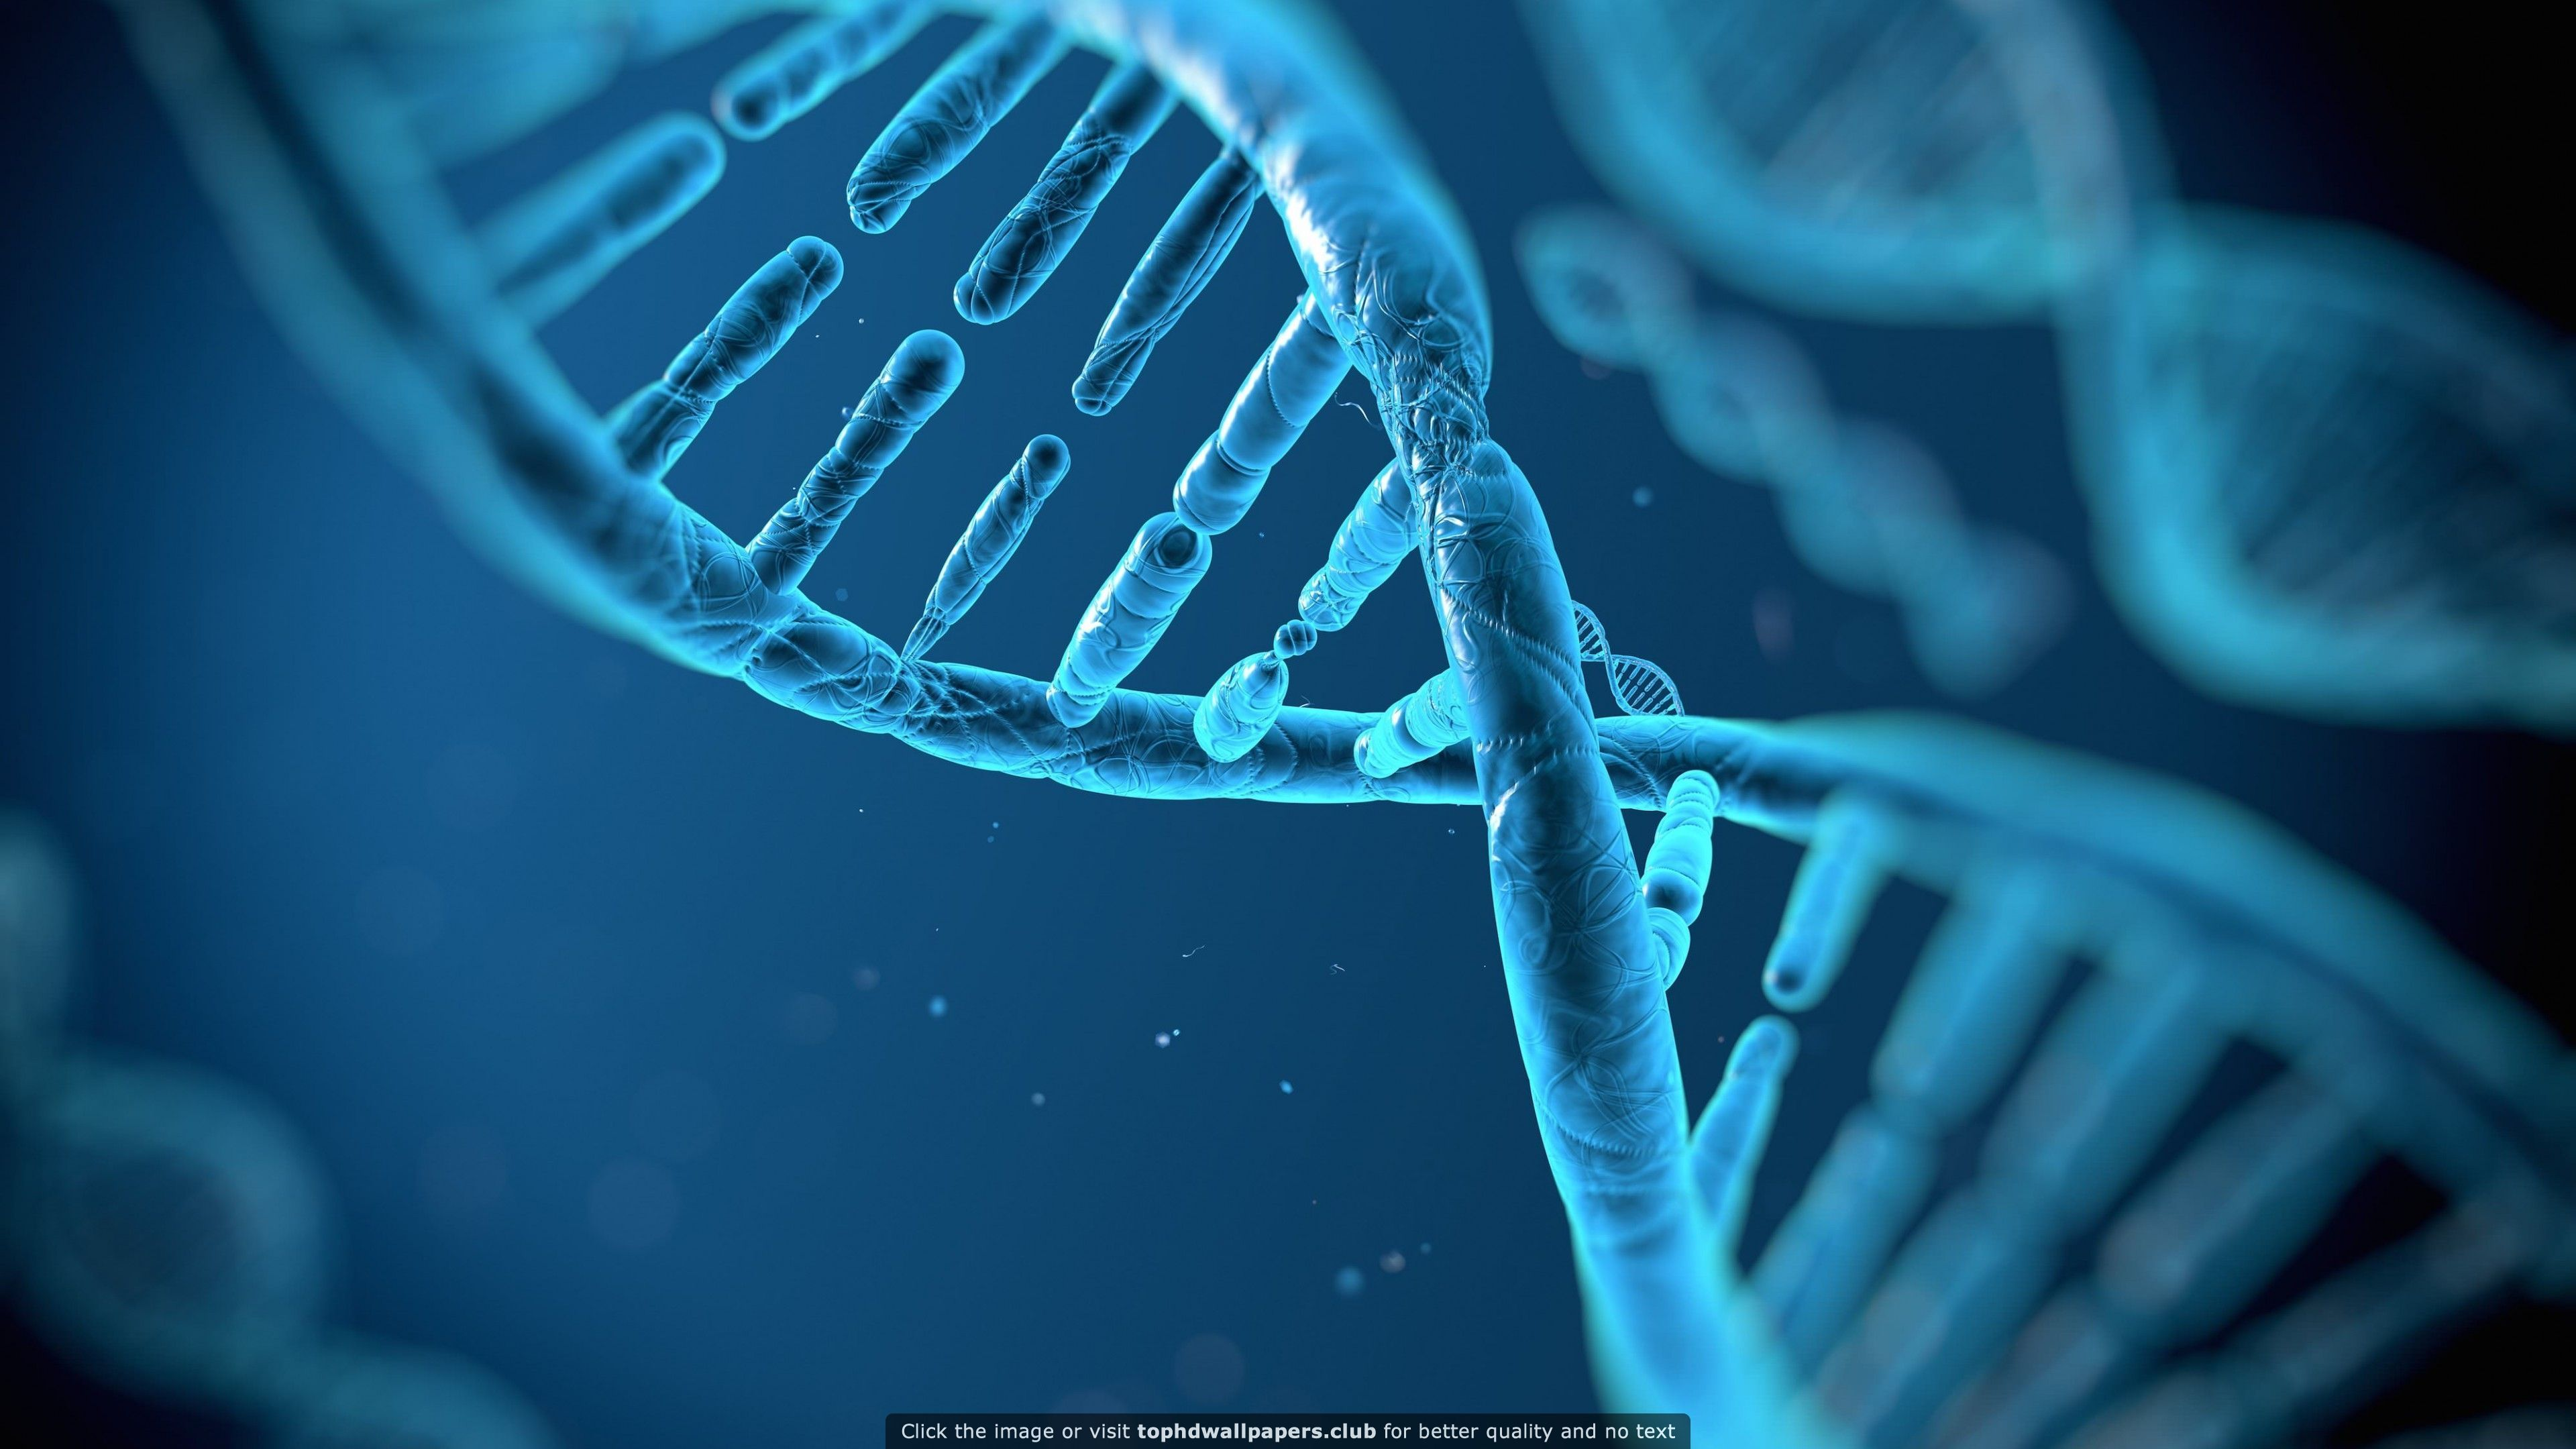 Dna Structure Hd Wallpaper For Your Pc Mac Or Mobile